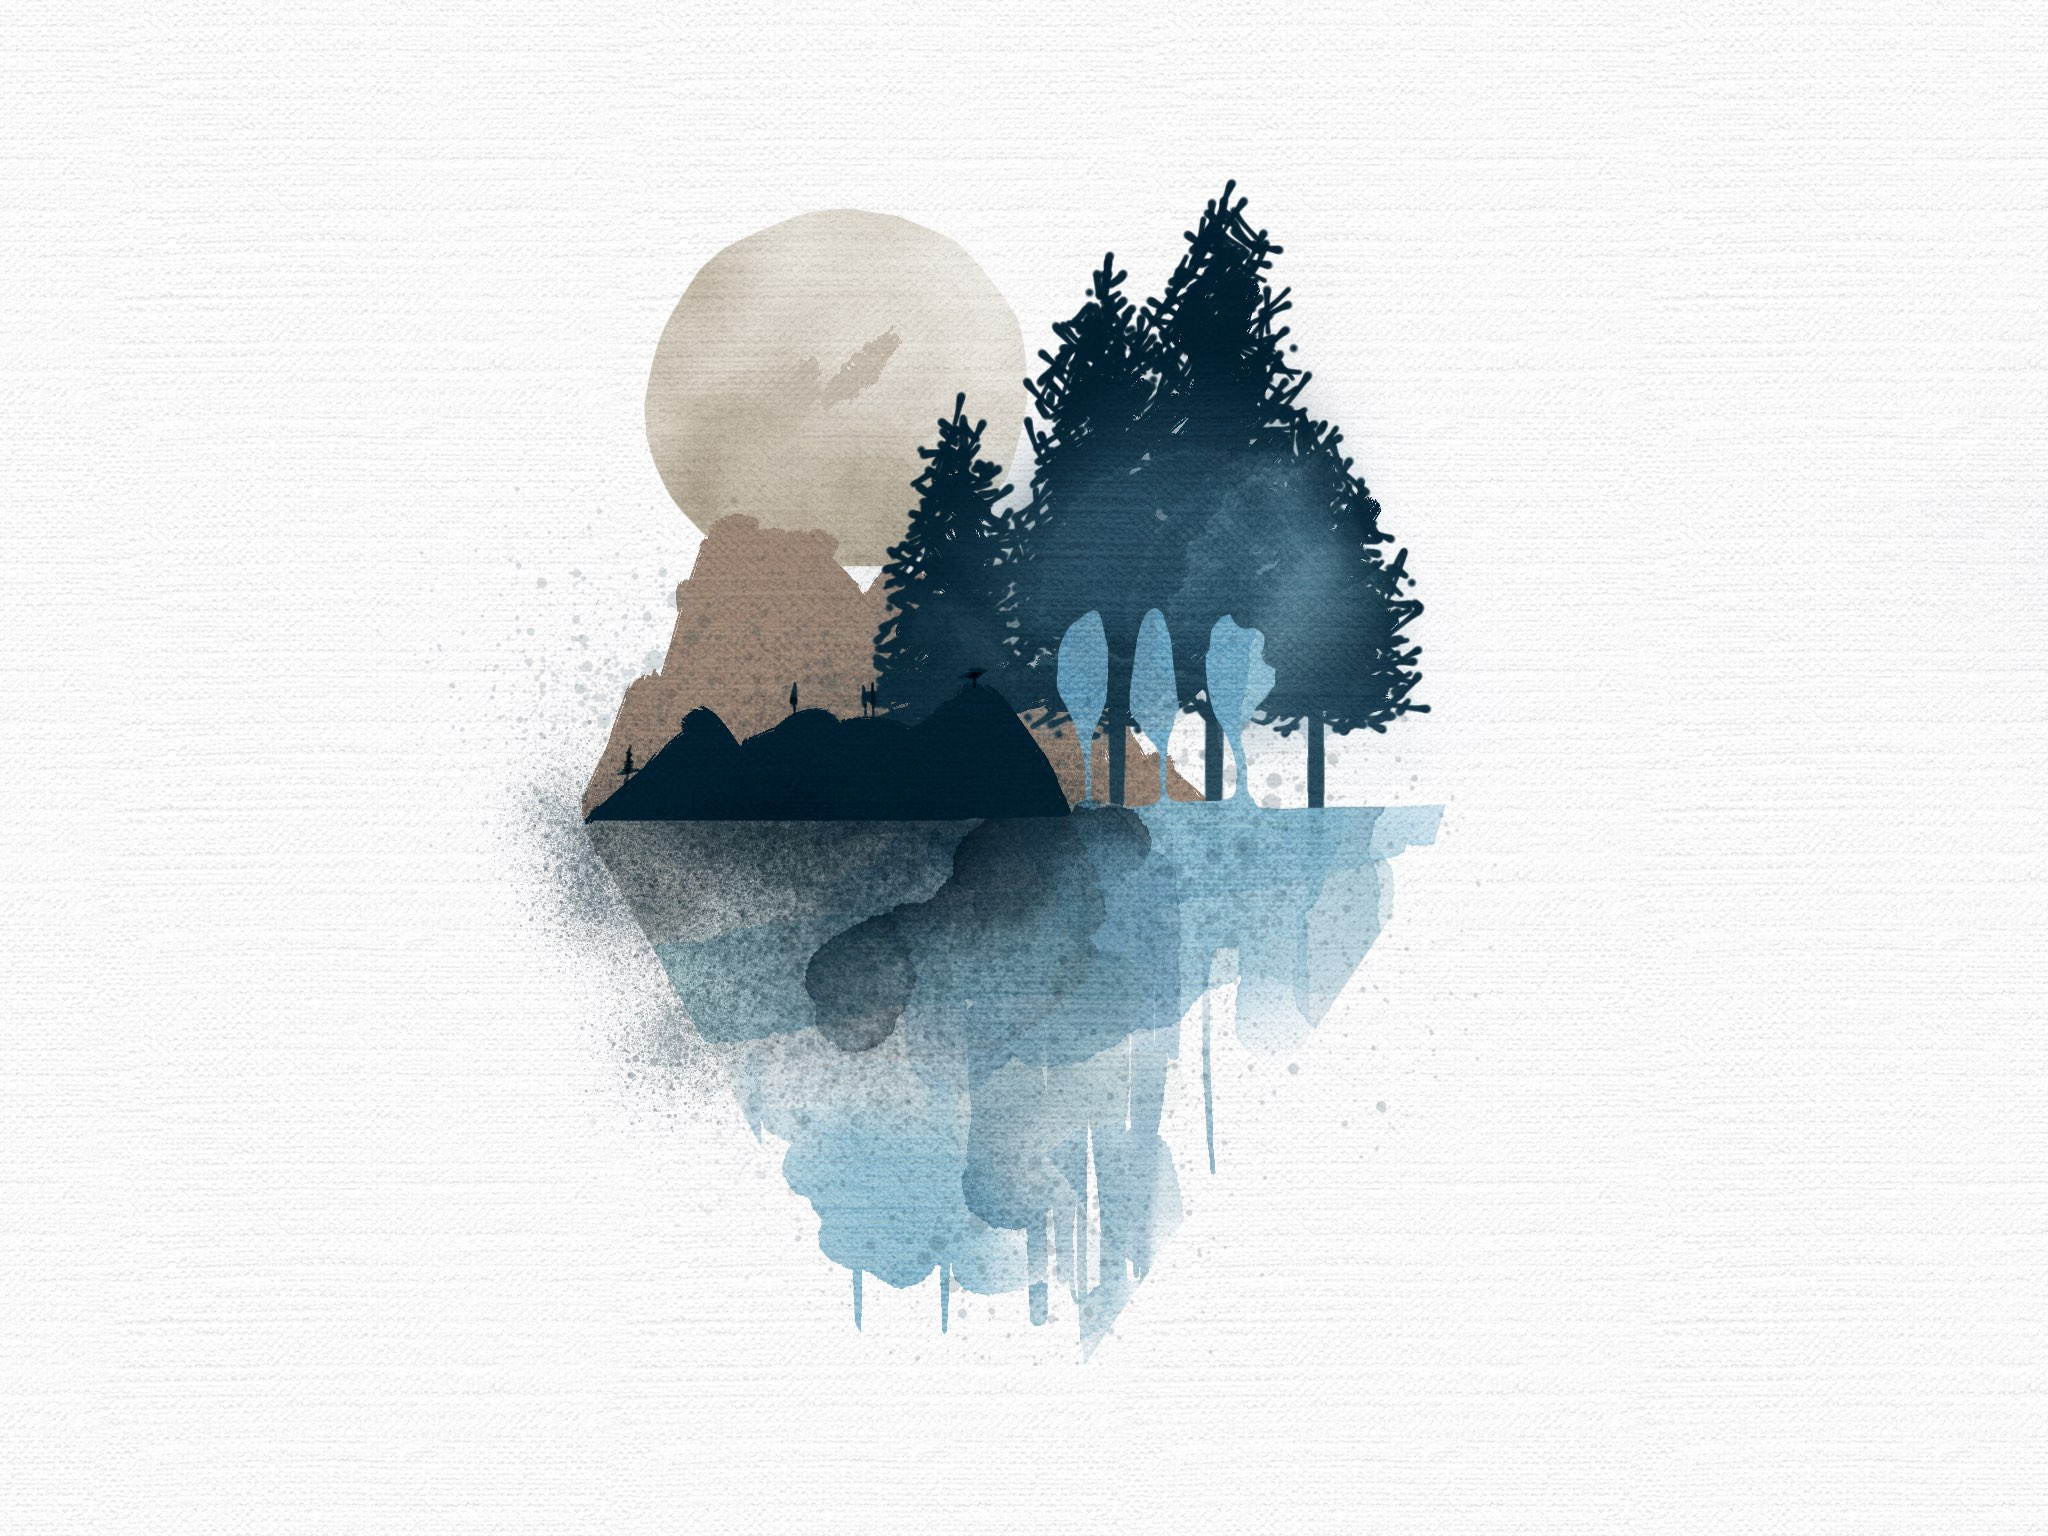 landscape made with Sketches